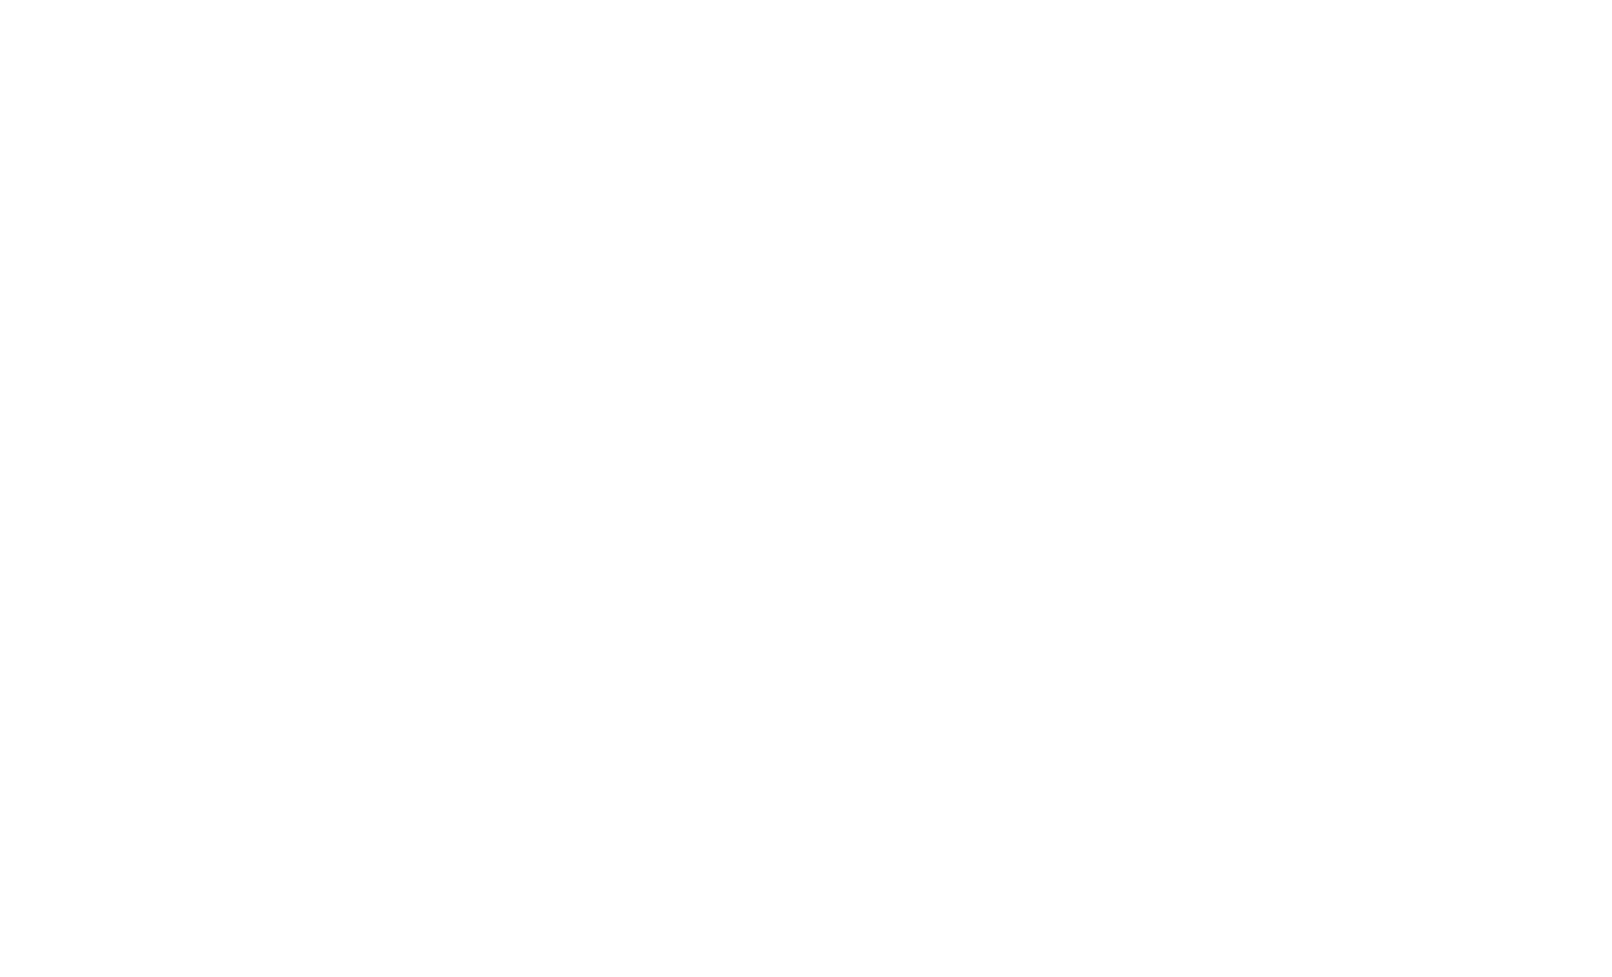 Mathiesen-Atna AS